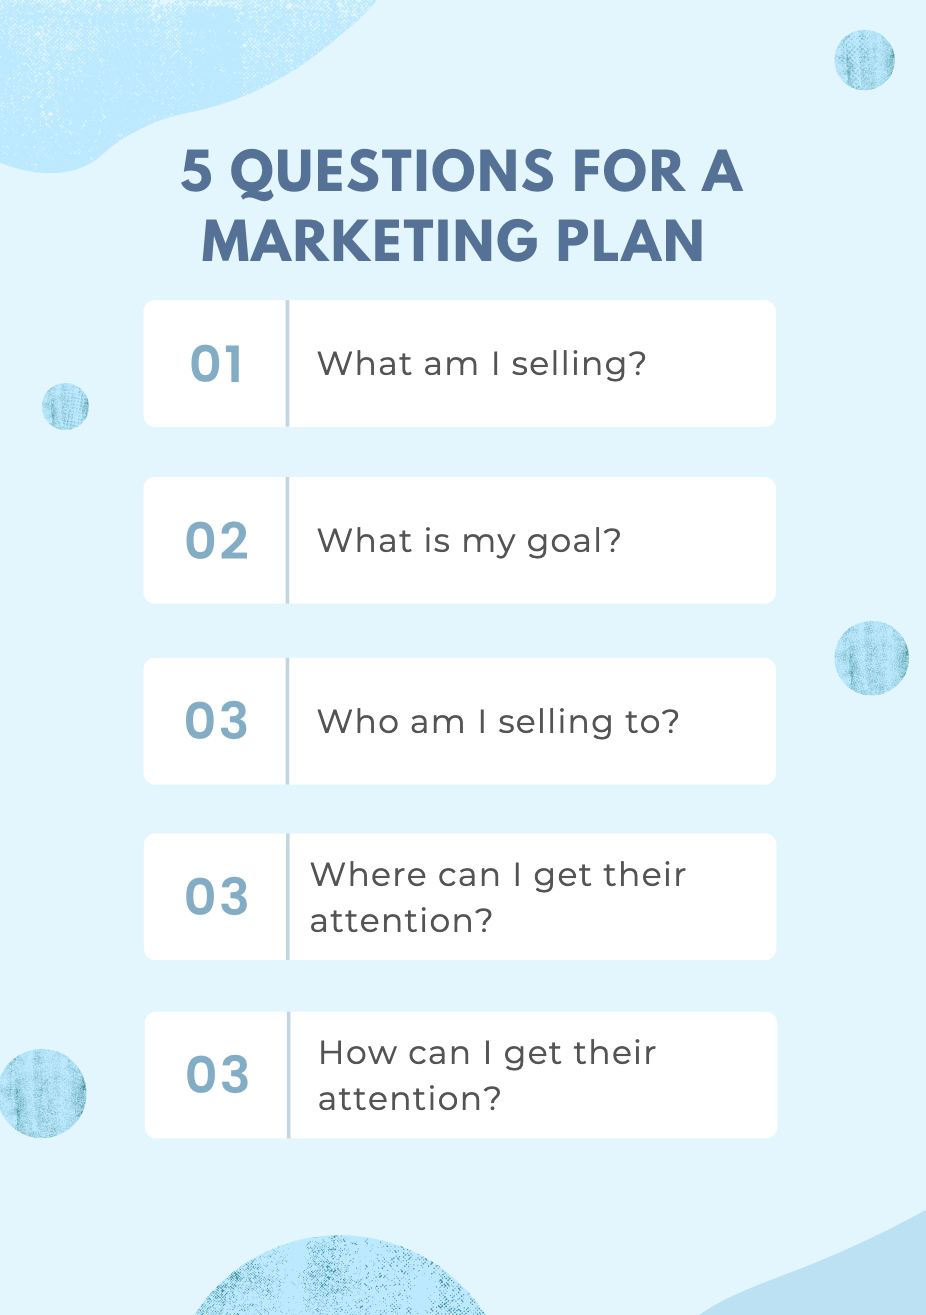 5 questions for a simple marketing plan